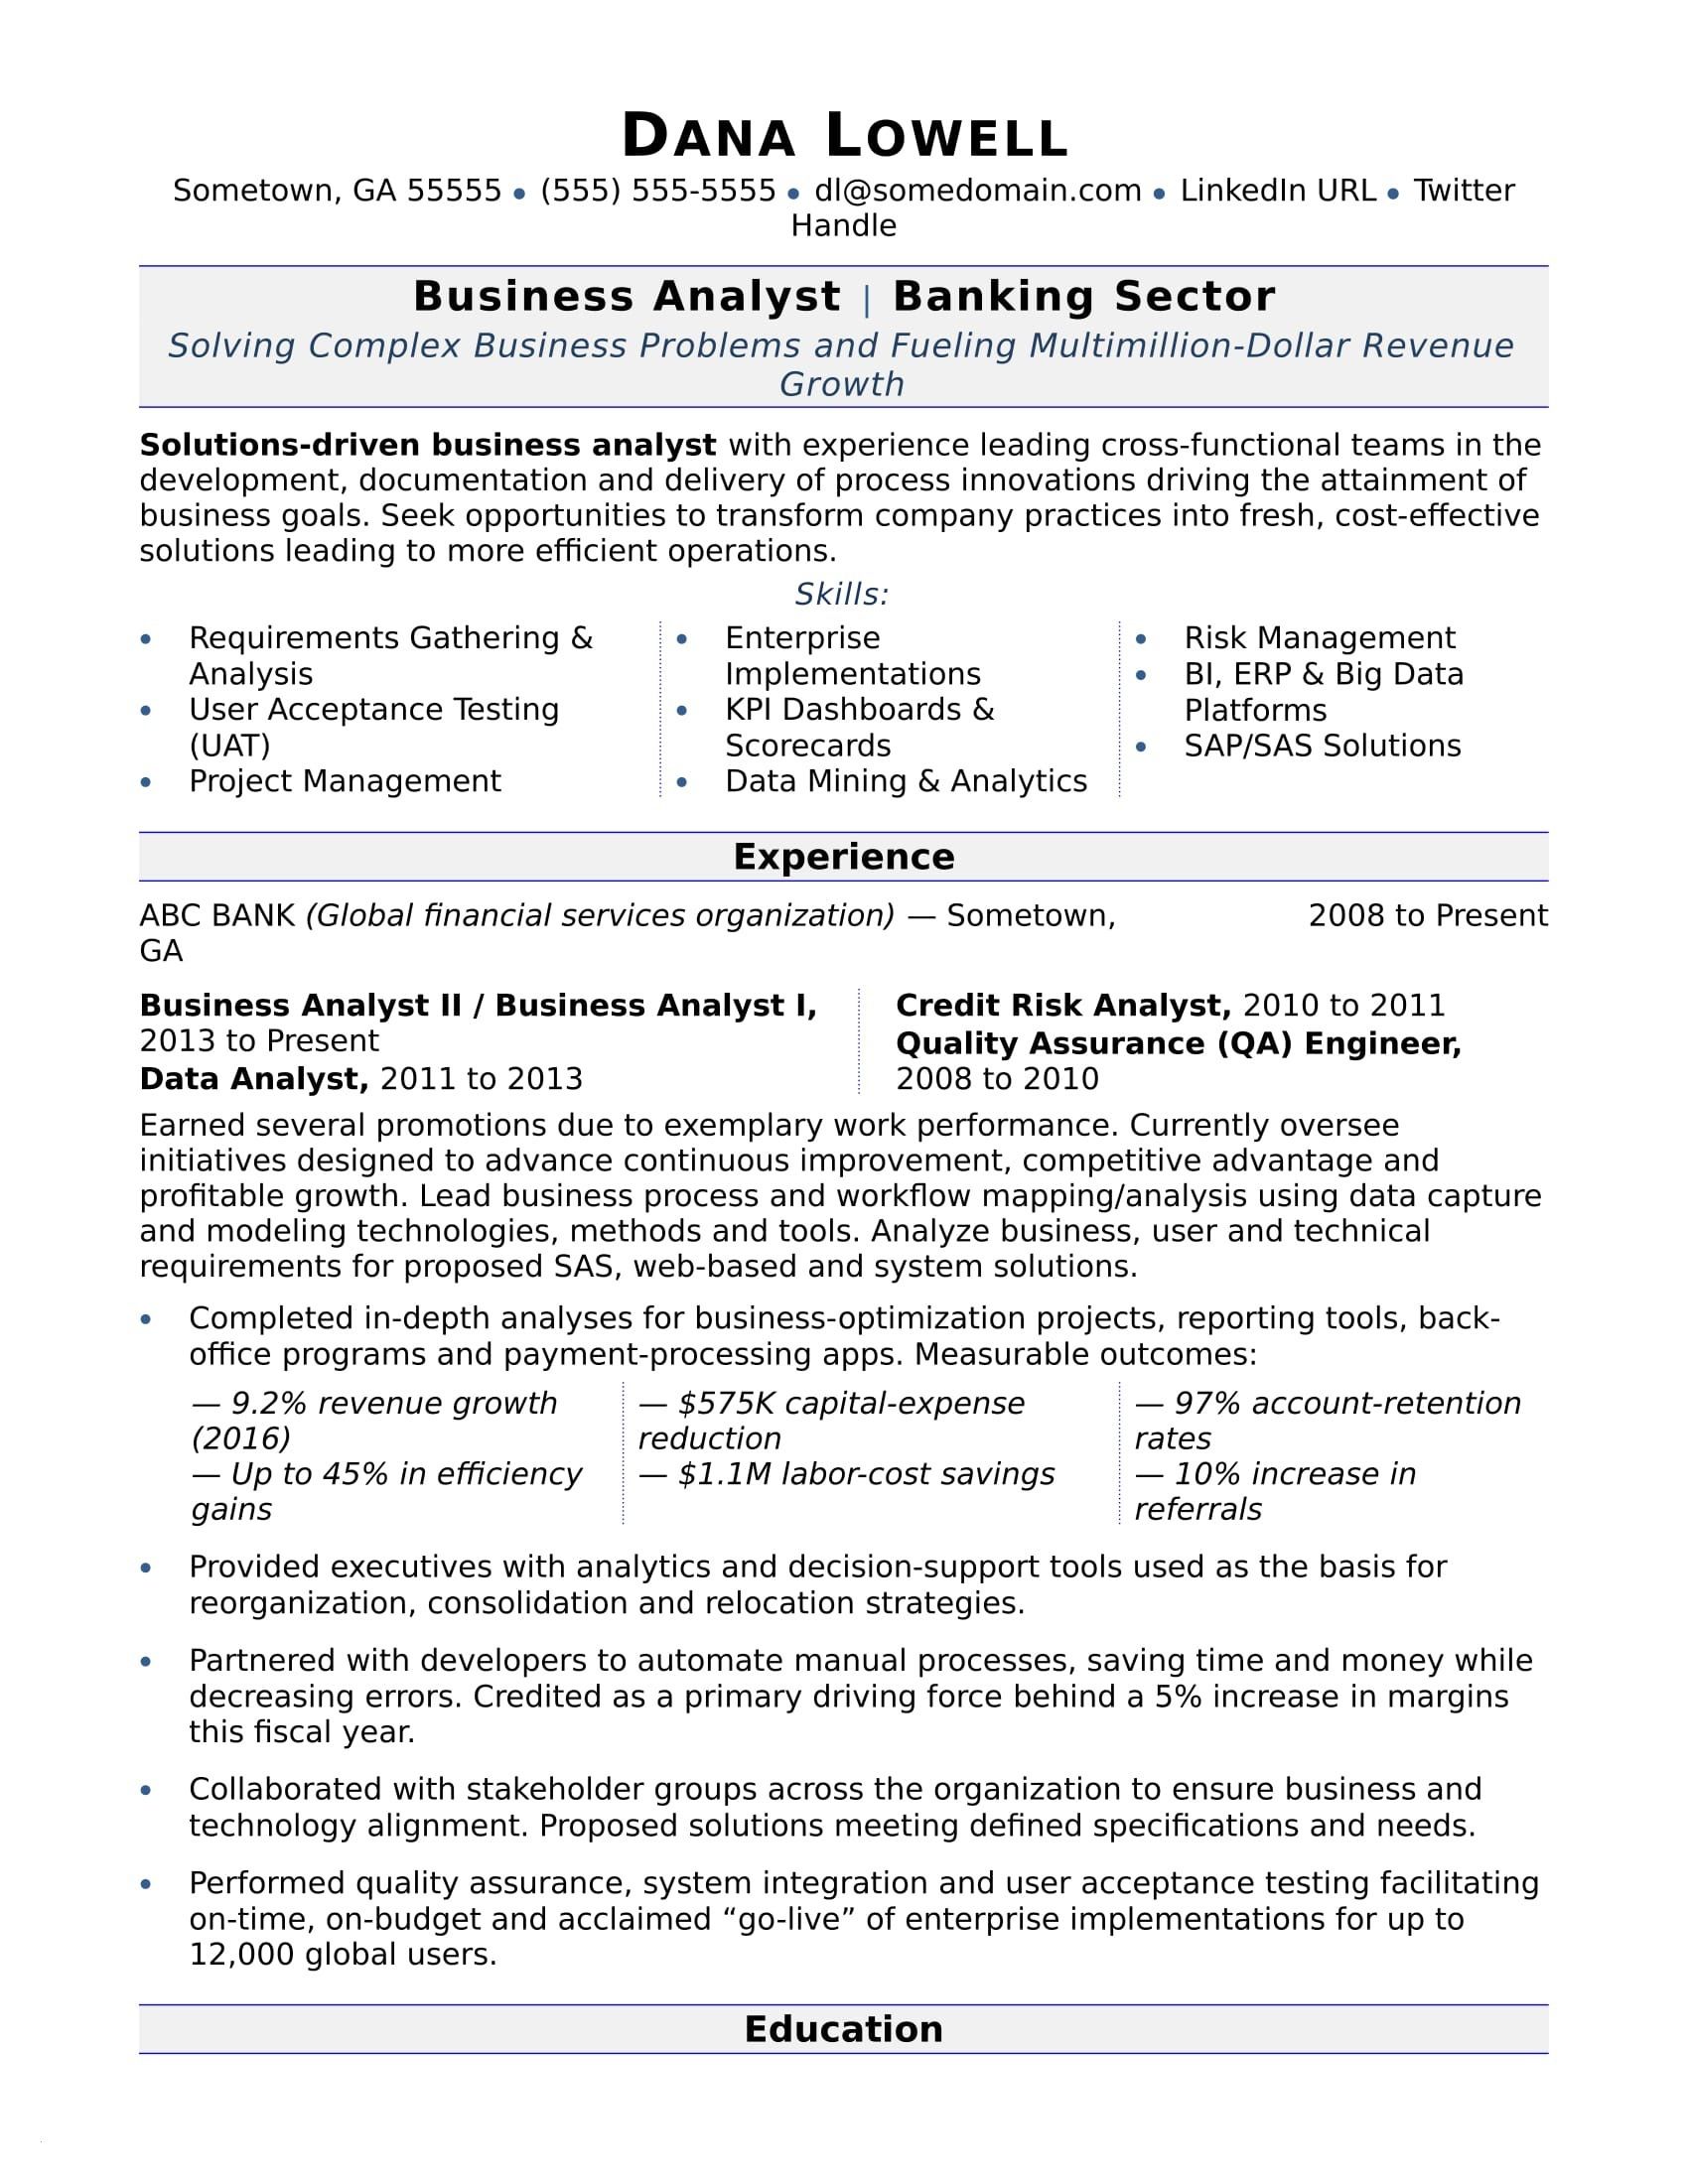 Data Analysis Resume - Entry Level Business Analyst Resume Awesome Entry Level Data Analyst